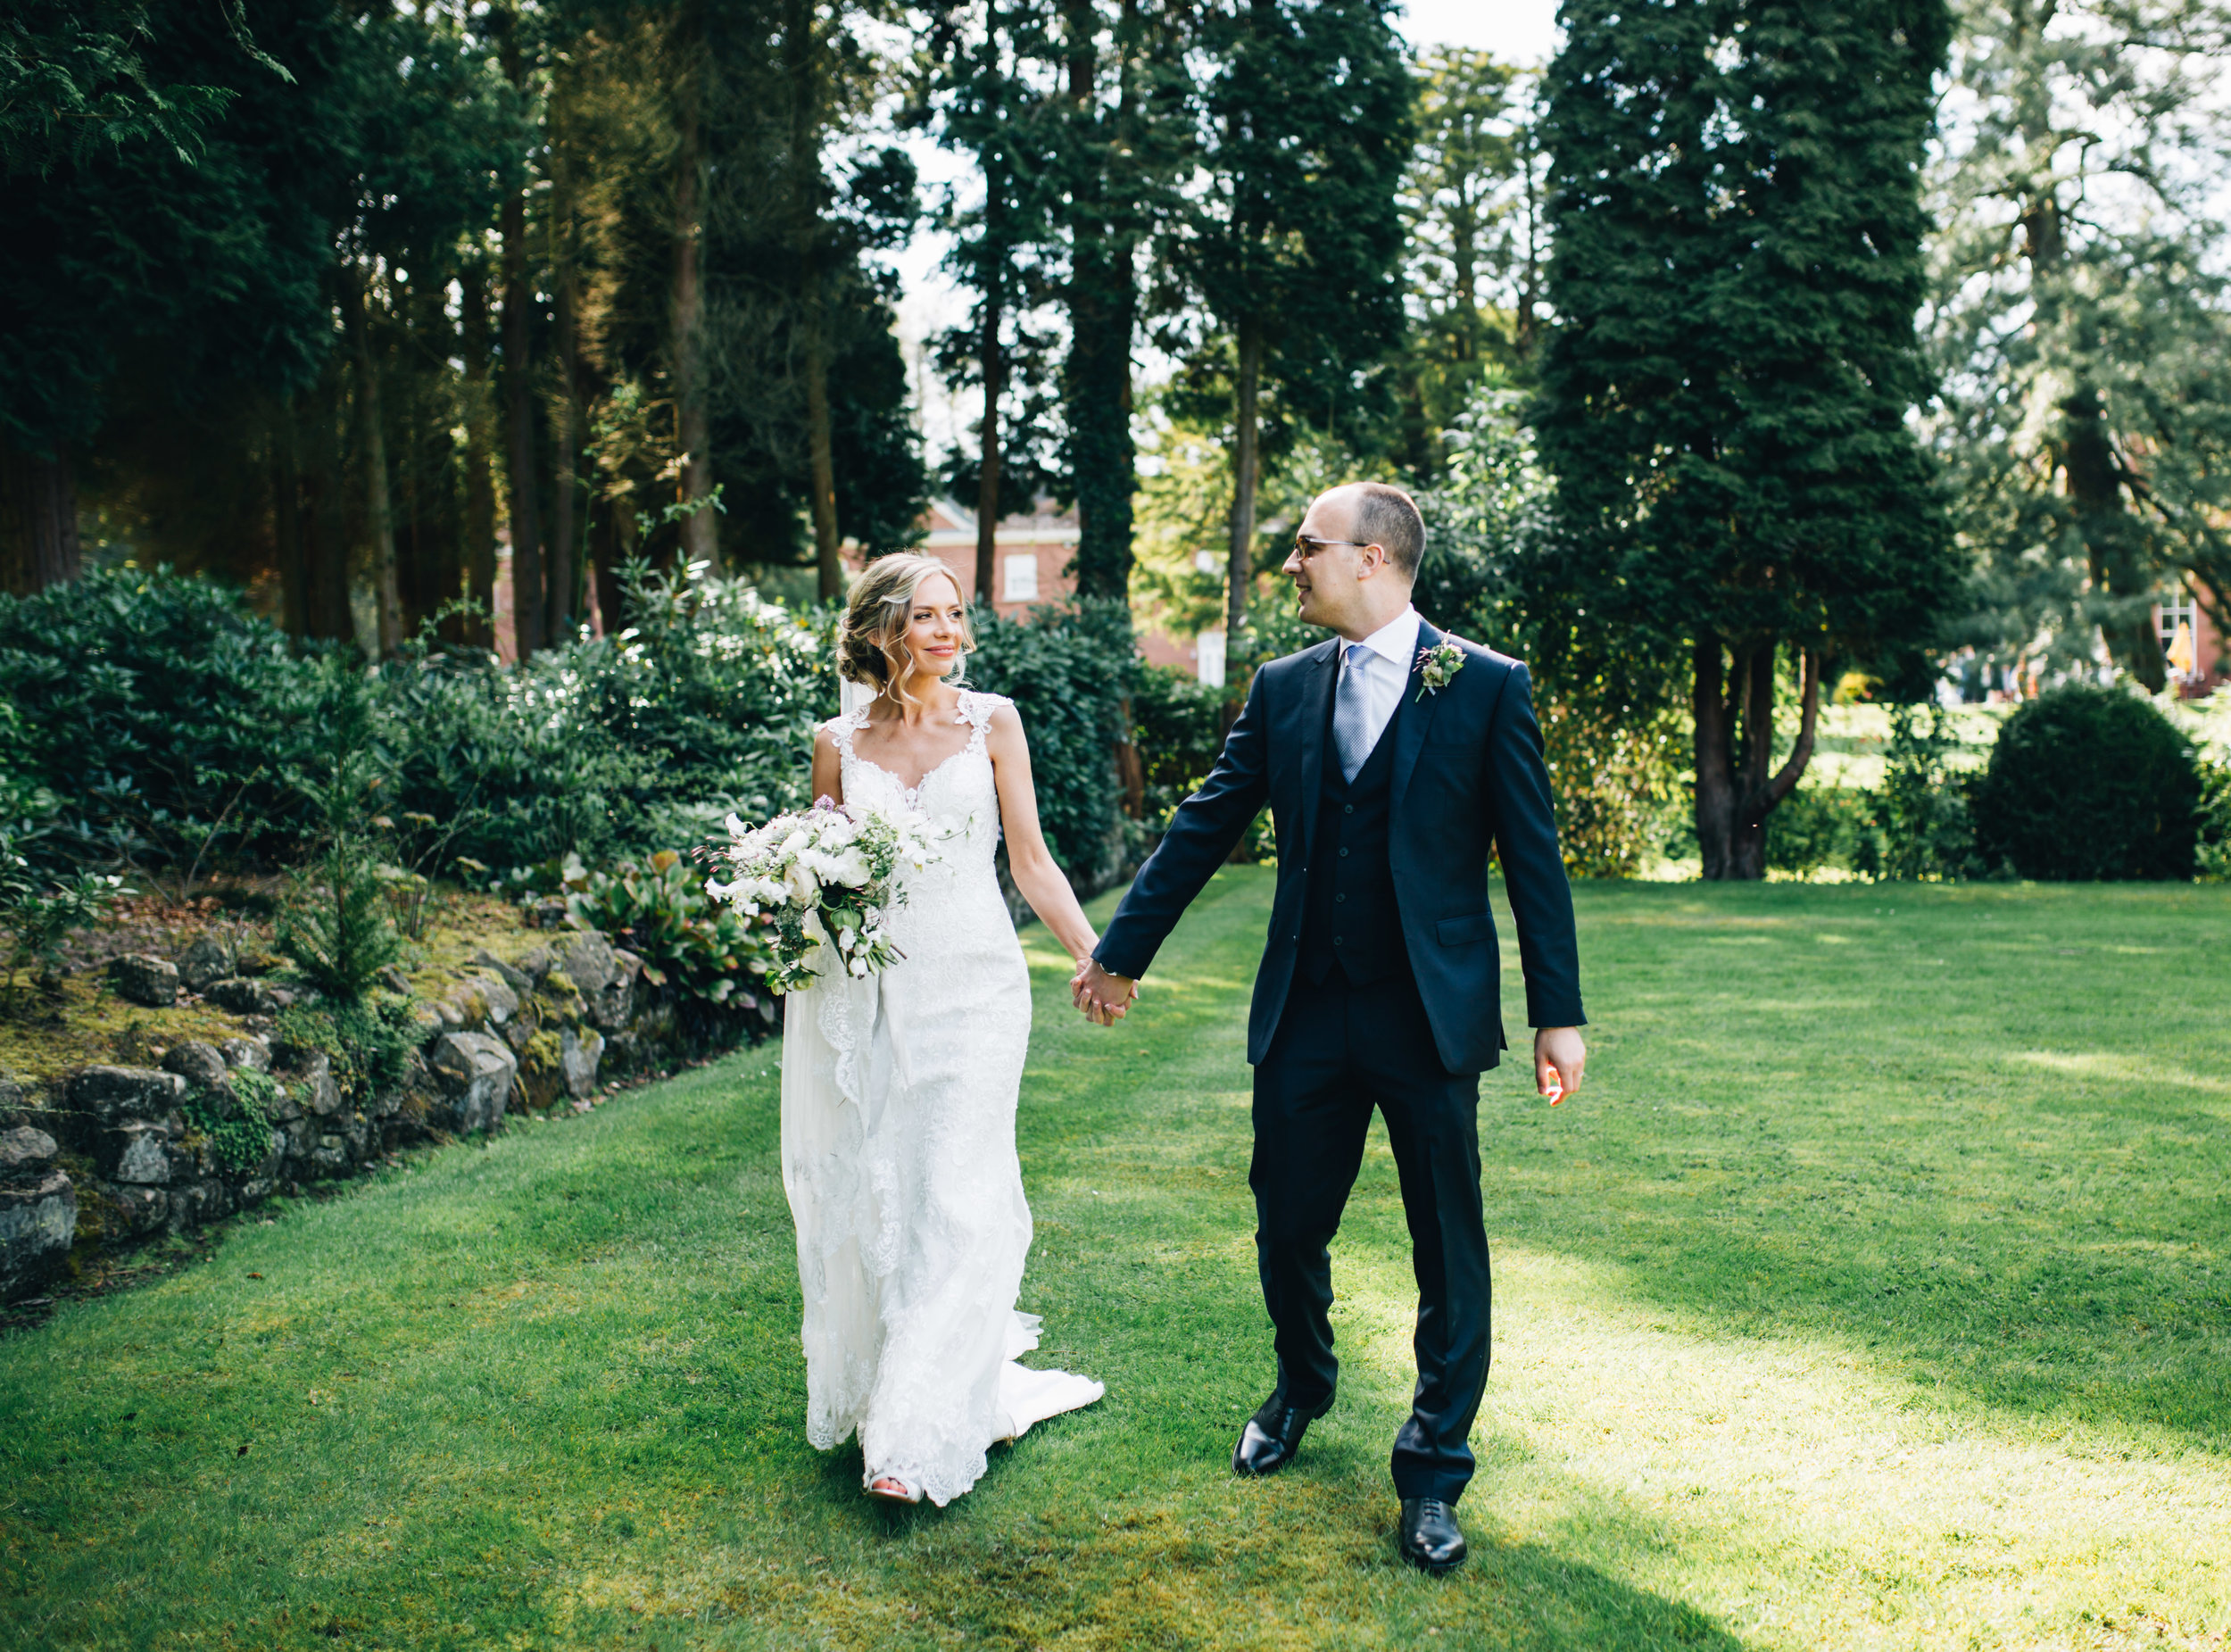 walking through the grounds at Cheshire wedding venues